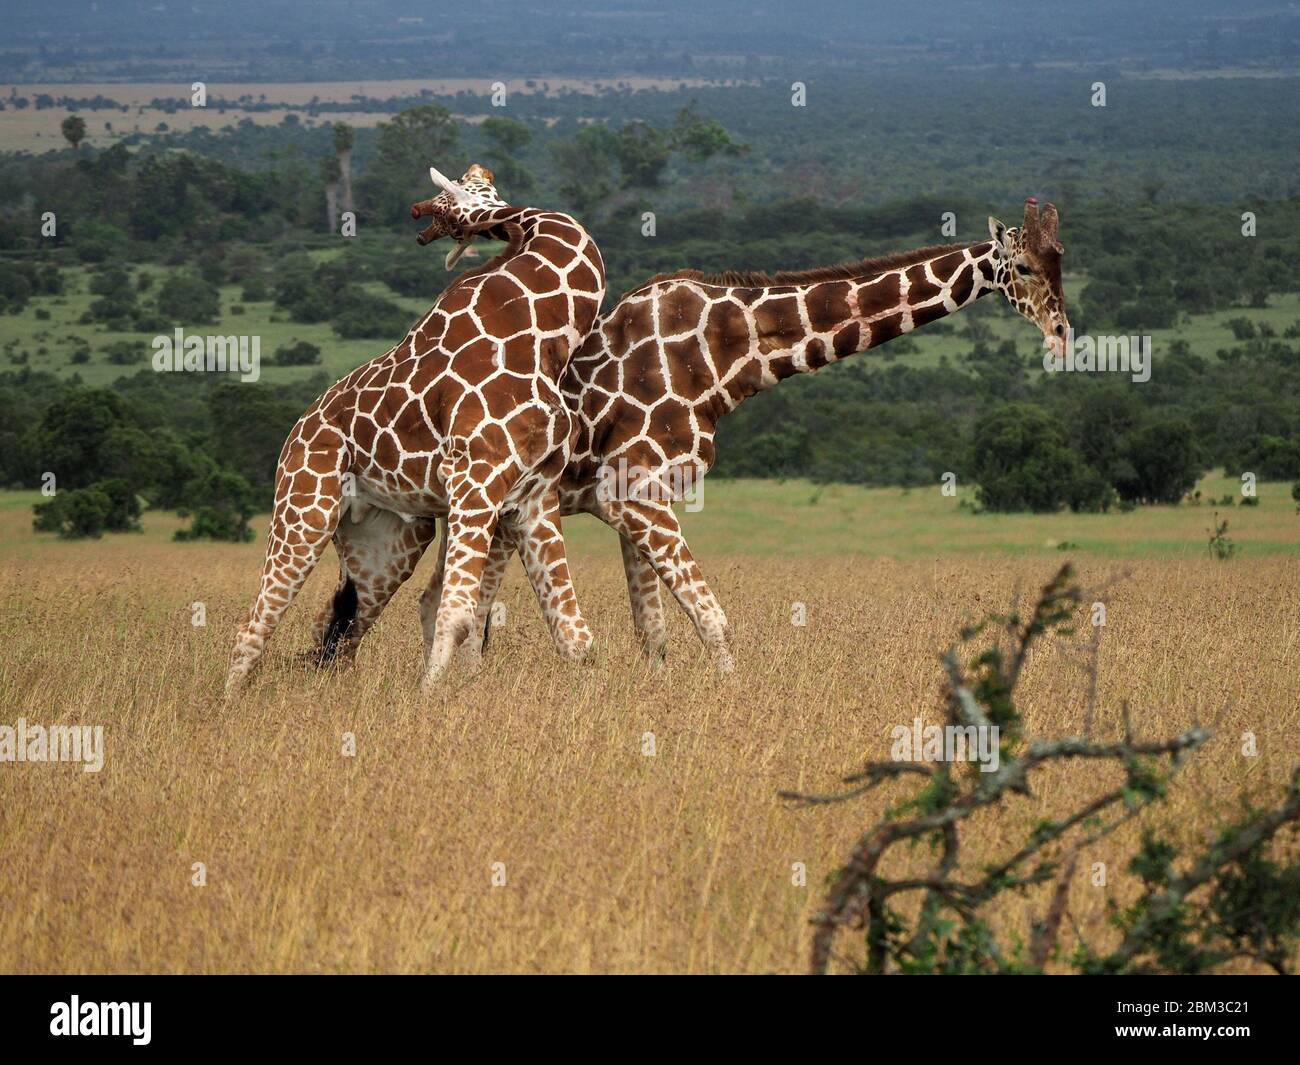 Two old bull Reticulated Giraffes (Giraffa camelopardis reticulata) fight over right to mate with female -Ol Pejeta Conservancy,Laikipia,Kenya, Africa Stock Photo